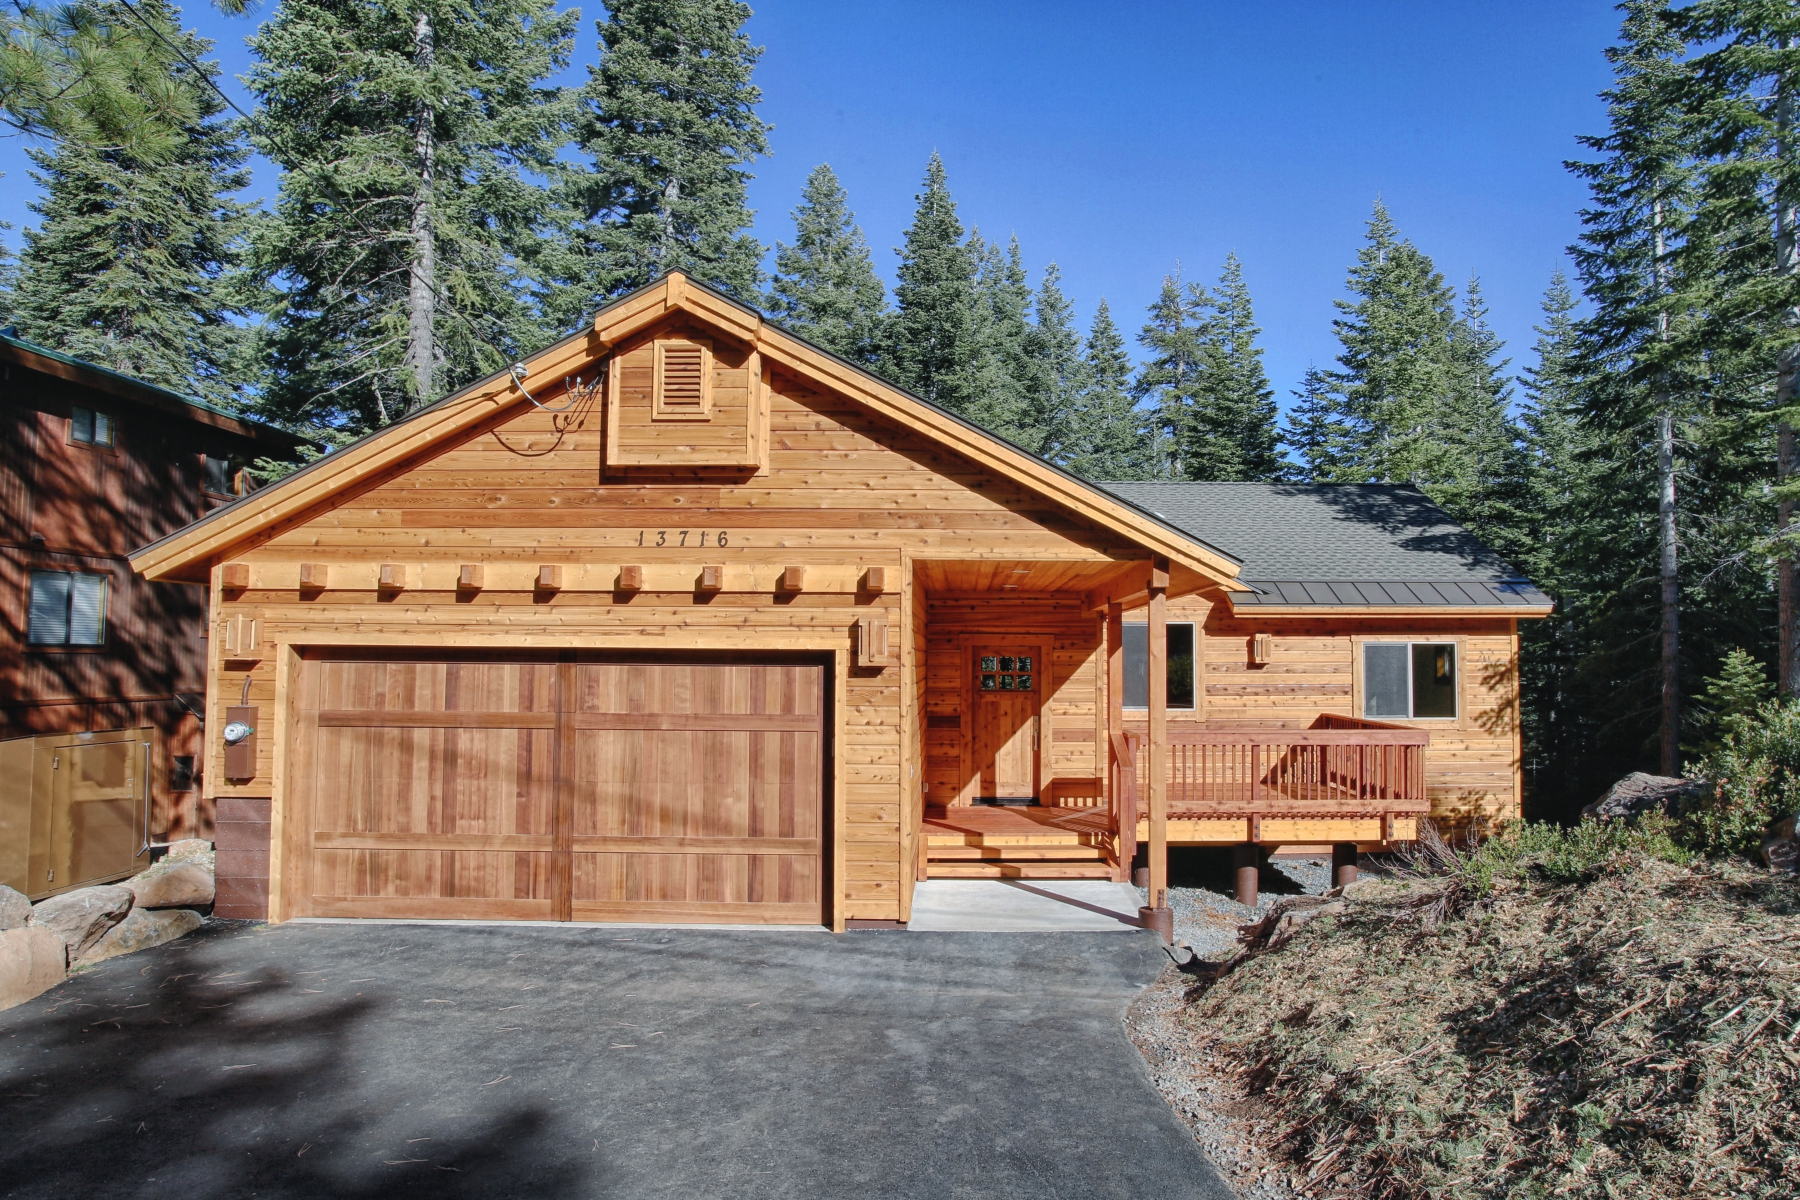 Single Family Homes for Active at 13479 Davos Dr. Truckee, CA 96161 13476 Davos Drive Truckee, California 96161 United States